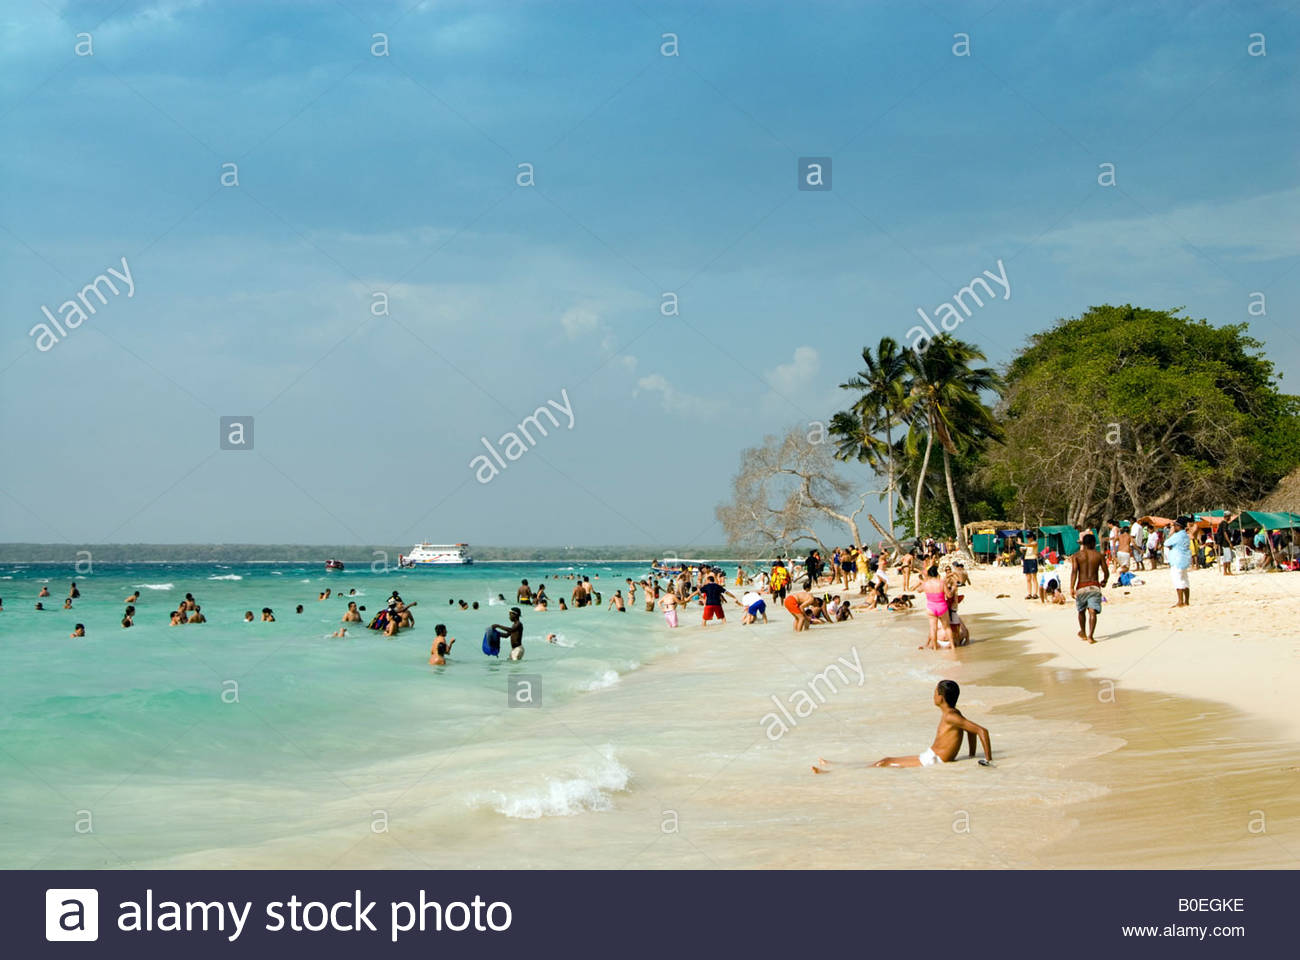 Playa Blanca on the Isla de Baru, Cartagena de Indias, Colombia - Stock Image